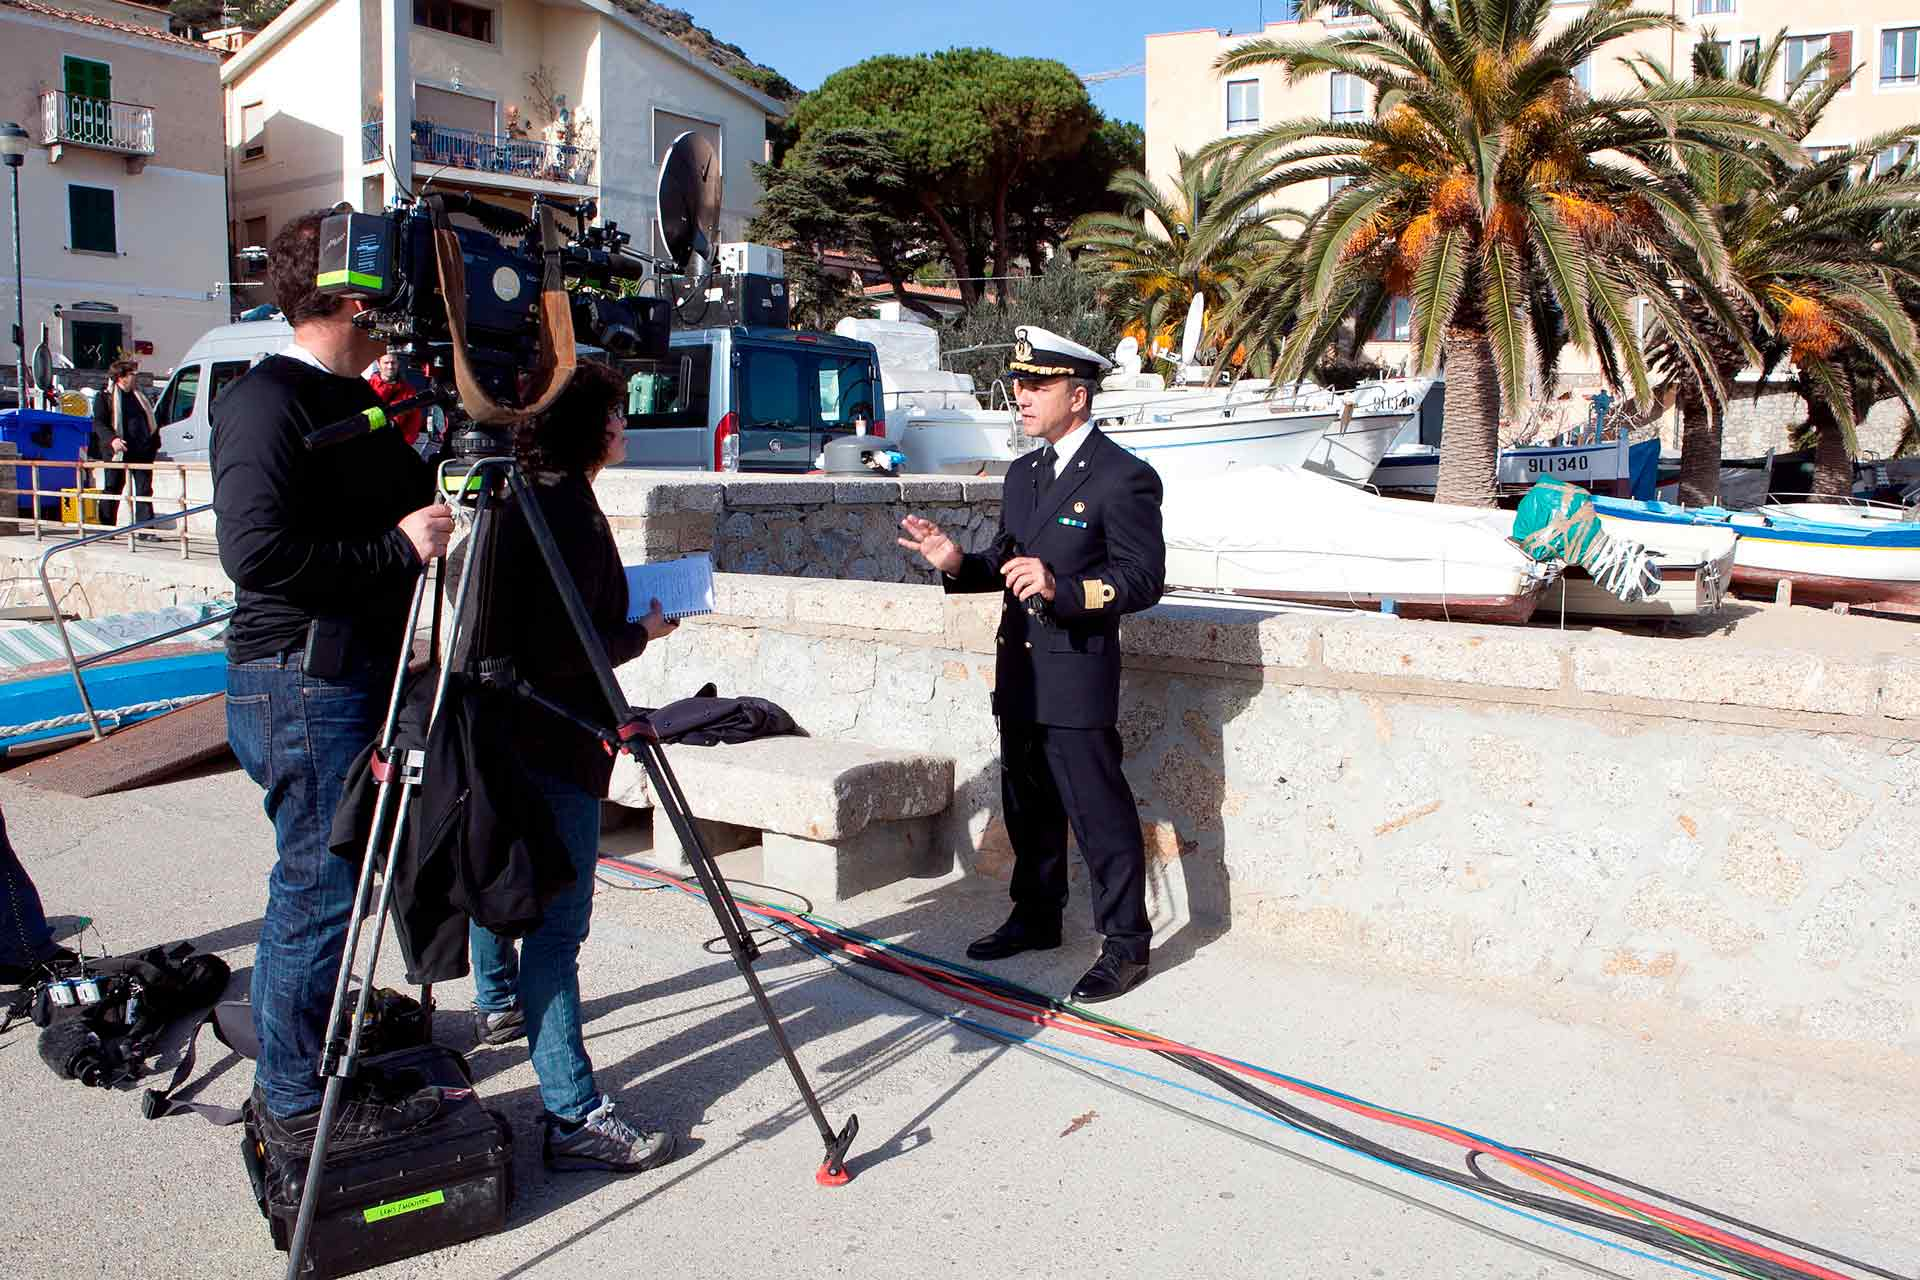 Even in the case of the Costa Concordia tragedy, the media have transformed a tragic news story into a real media event, with its protagonists, the twists and turns, and the spotlights always on.